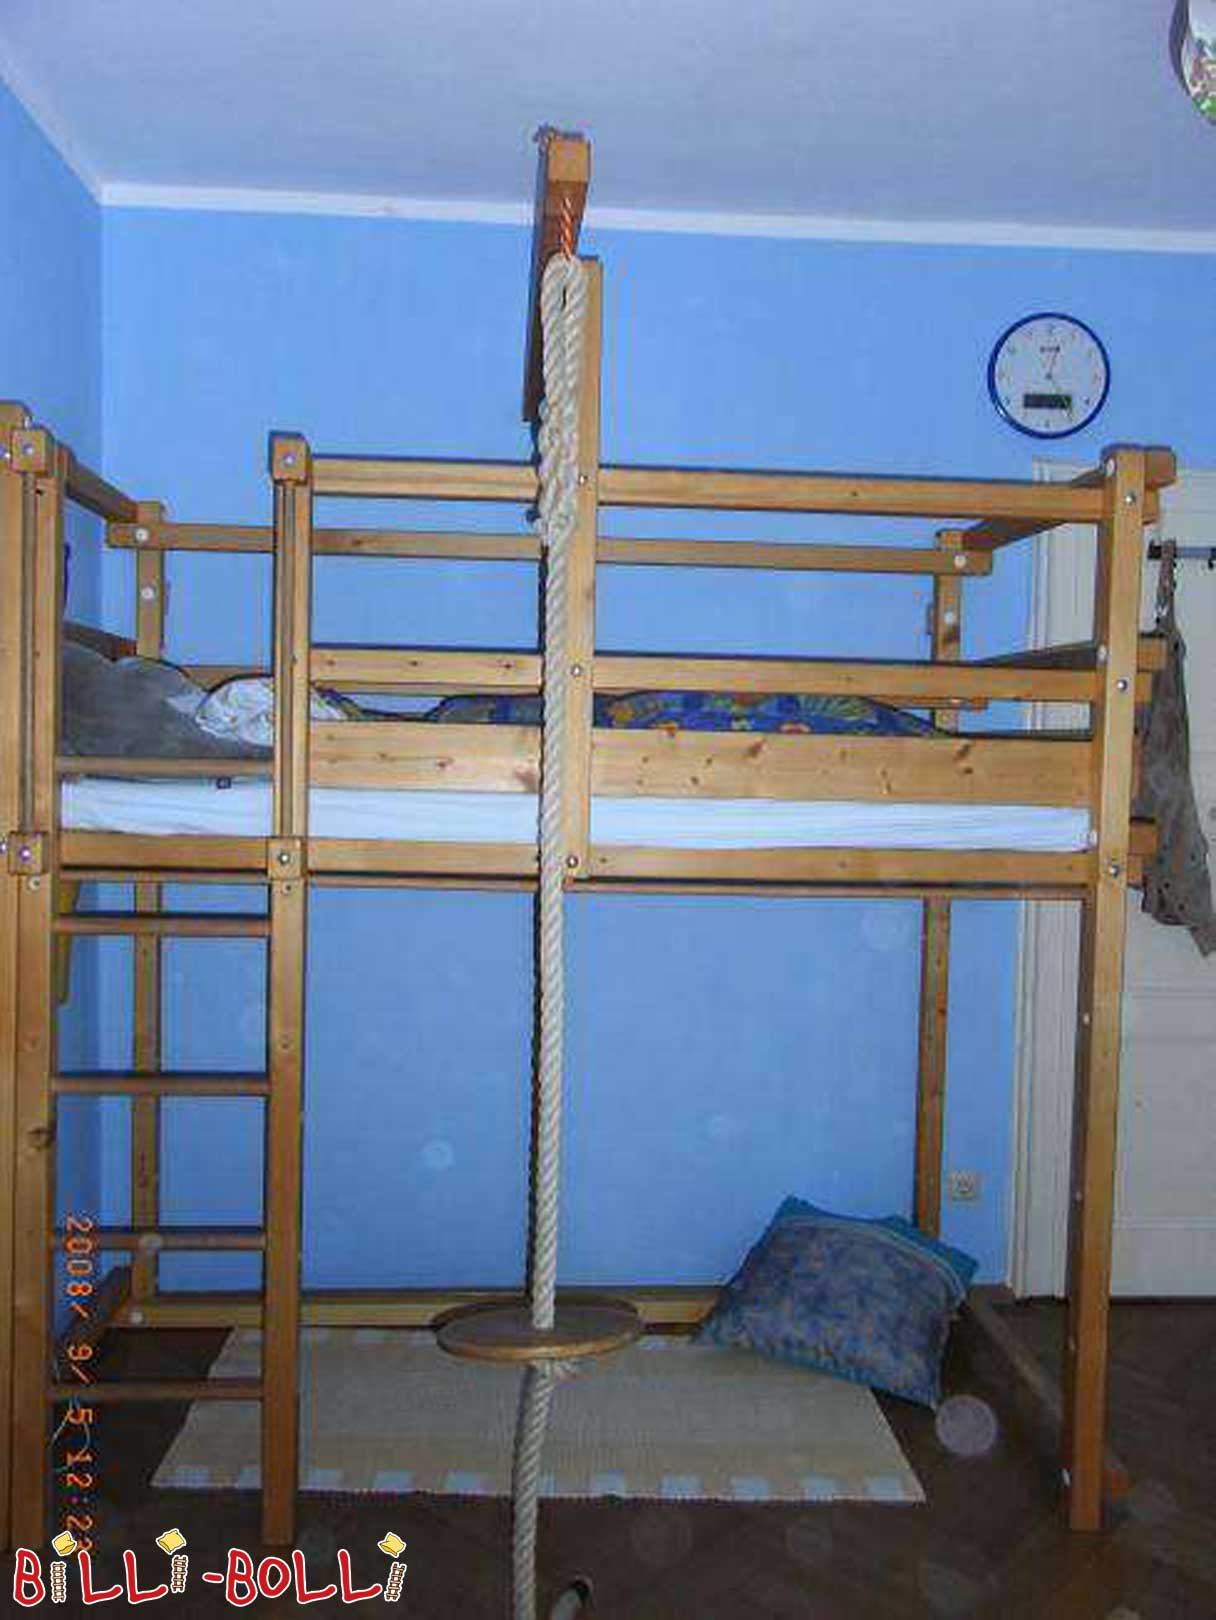 Growing Billi-Bolli bunk bed (second hand loft bed)